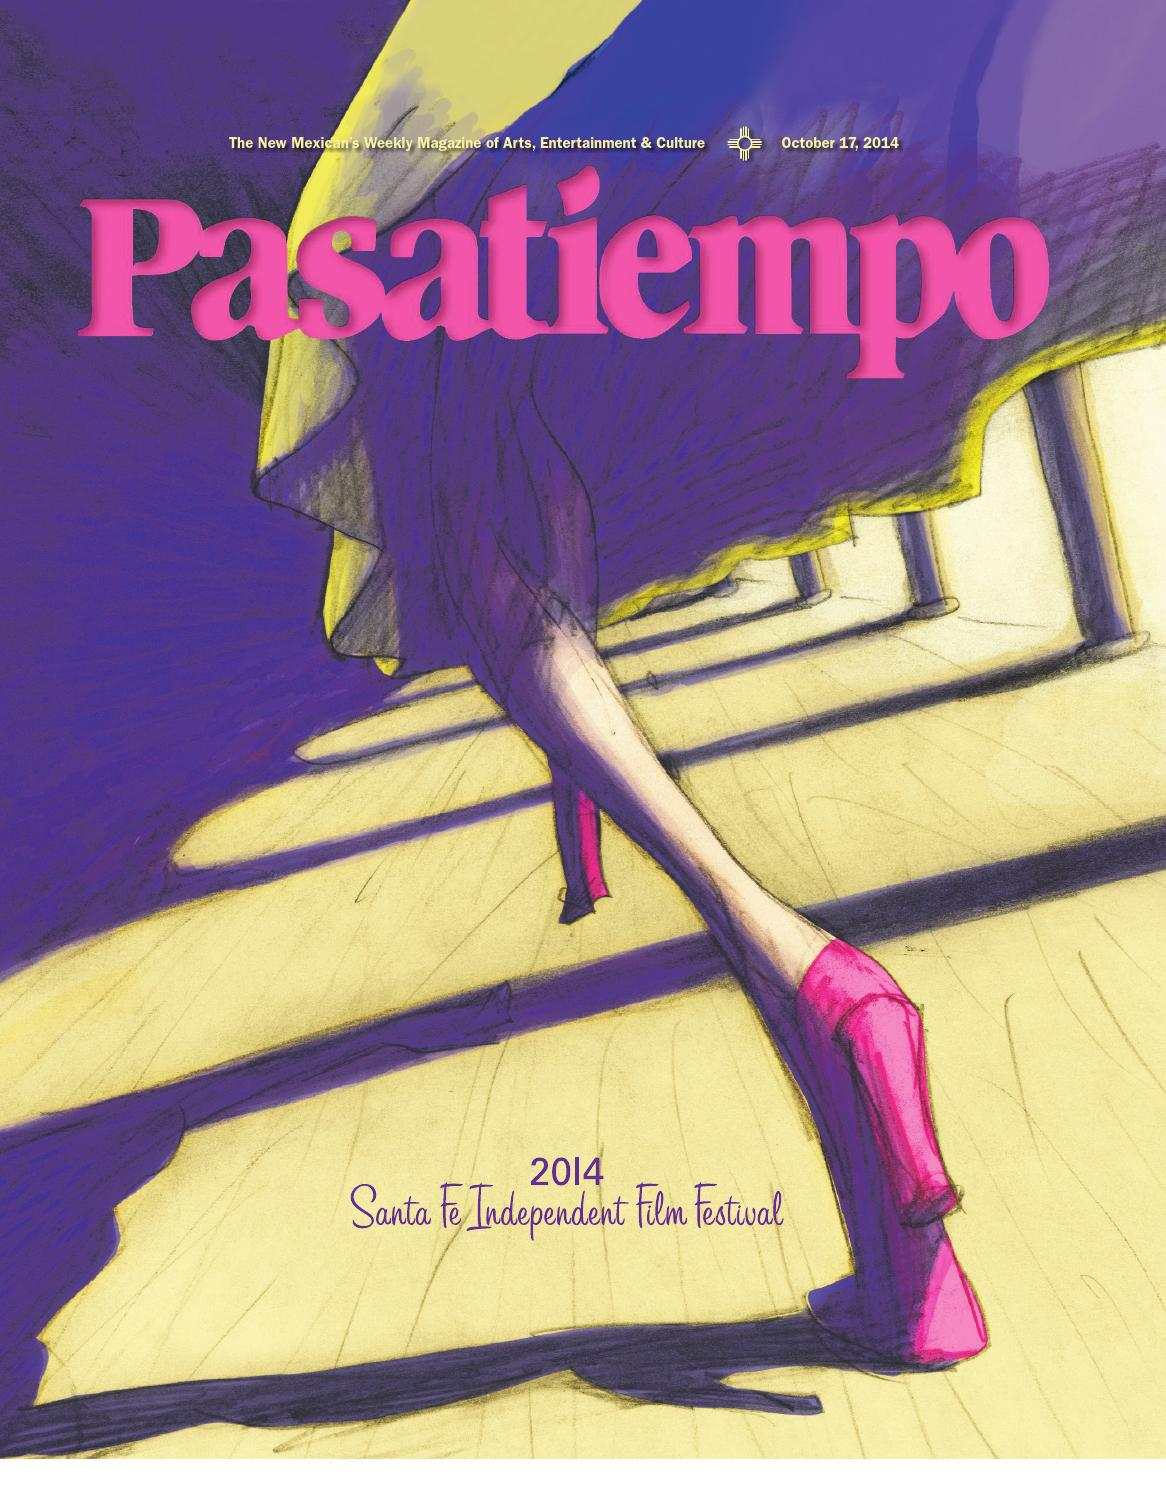 Pasatiempo October 17, 2014 by The New Mexican issuu